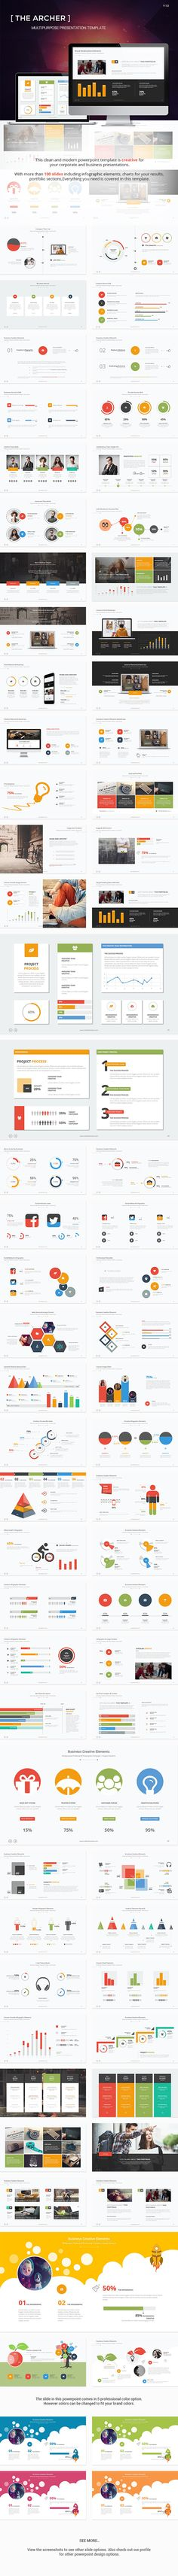 http://graphicriver.net/item/the-archer-presentation-template/10004044?utm_source=sharepi